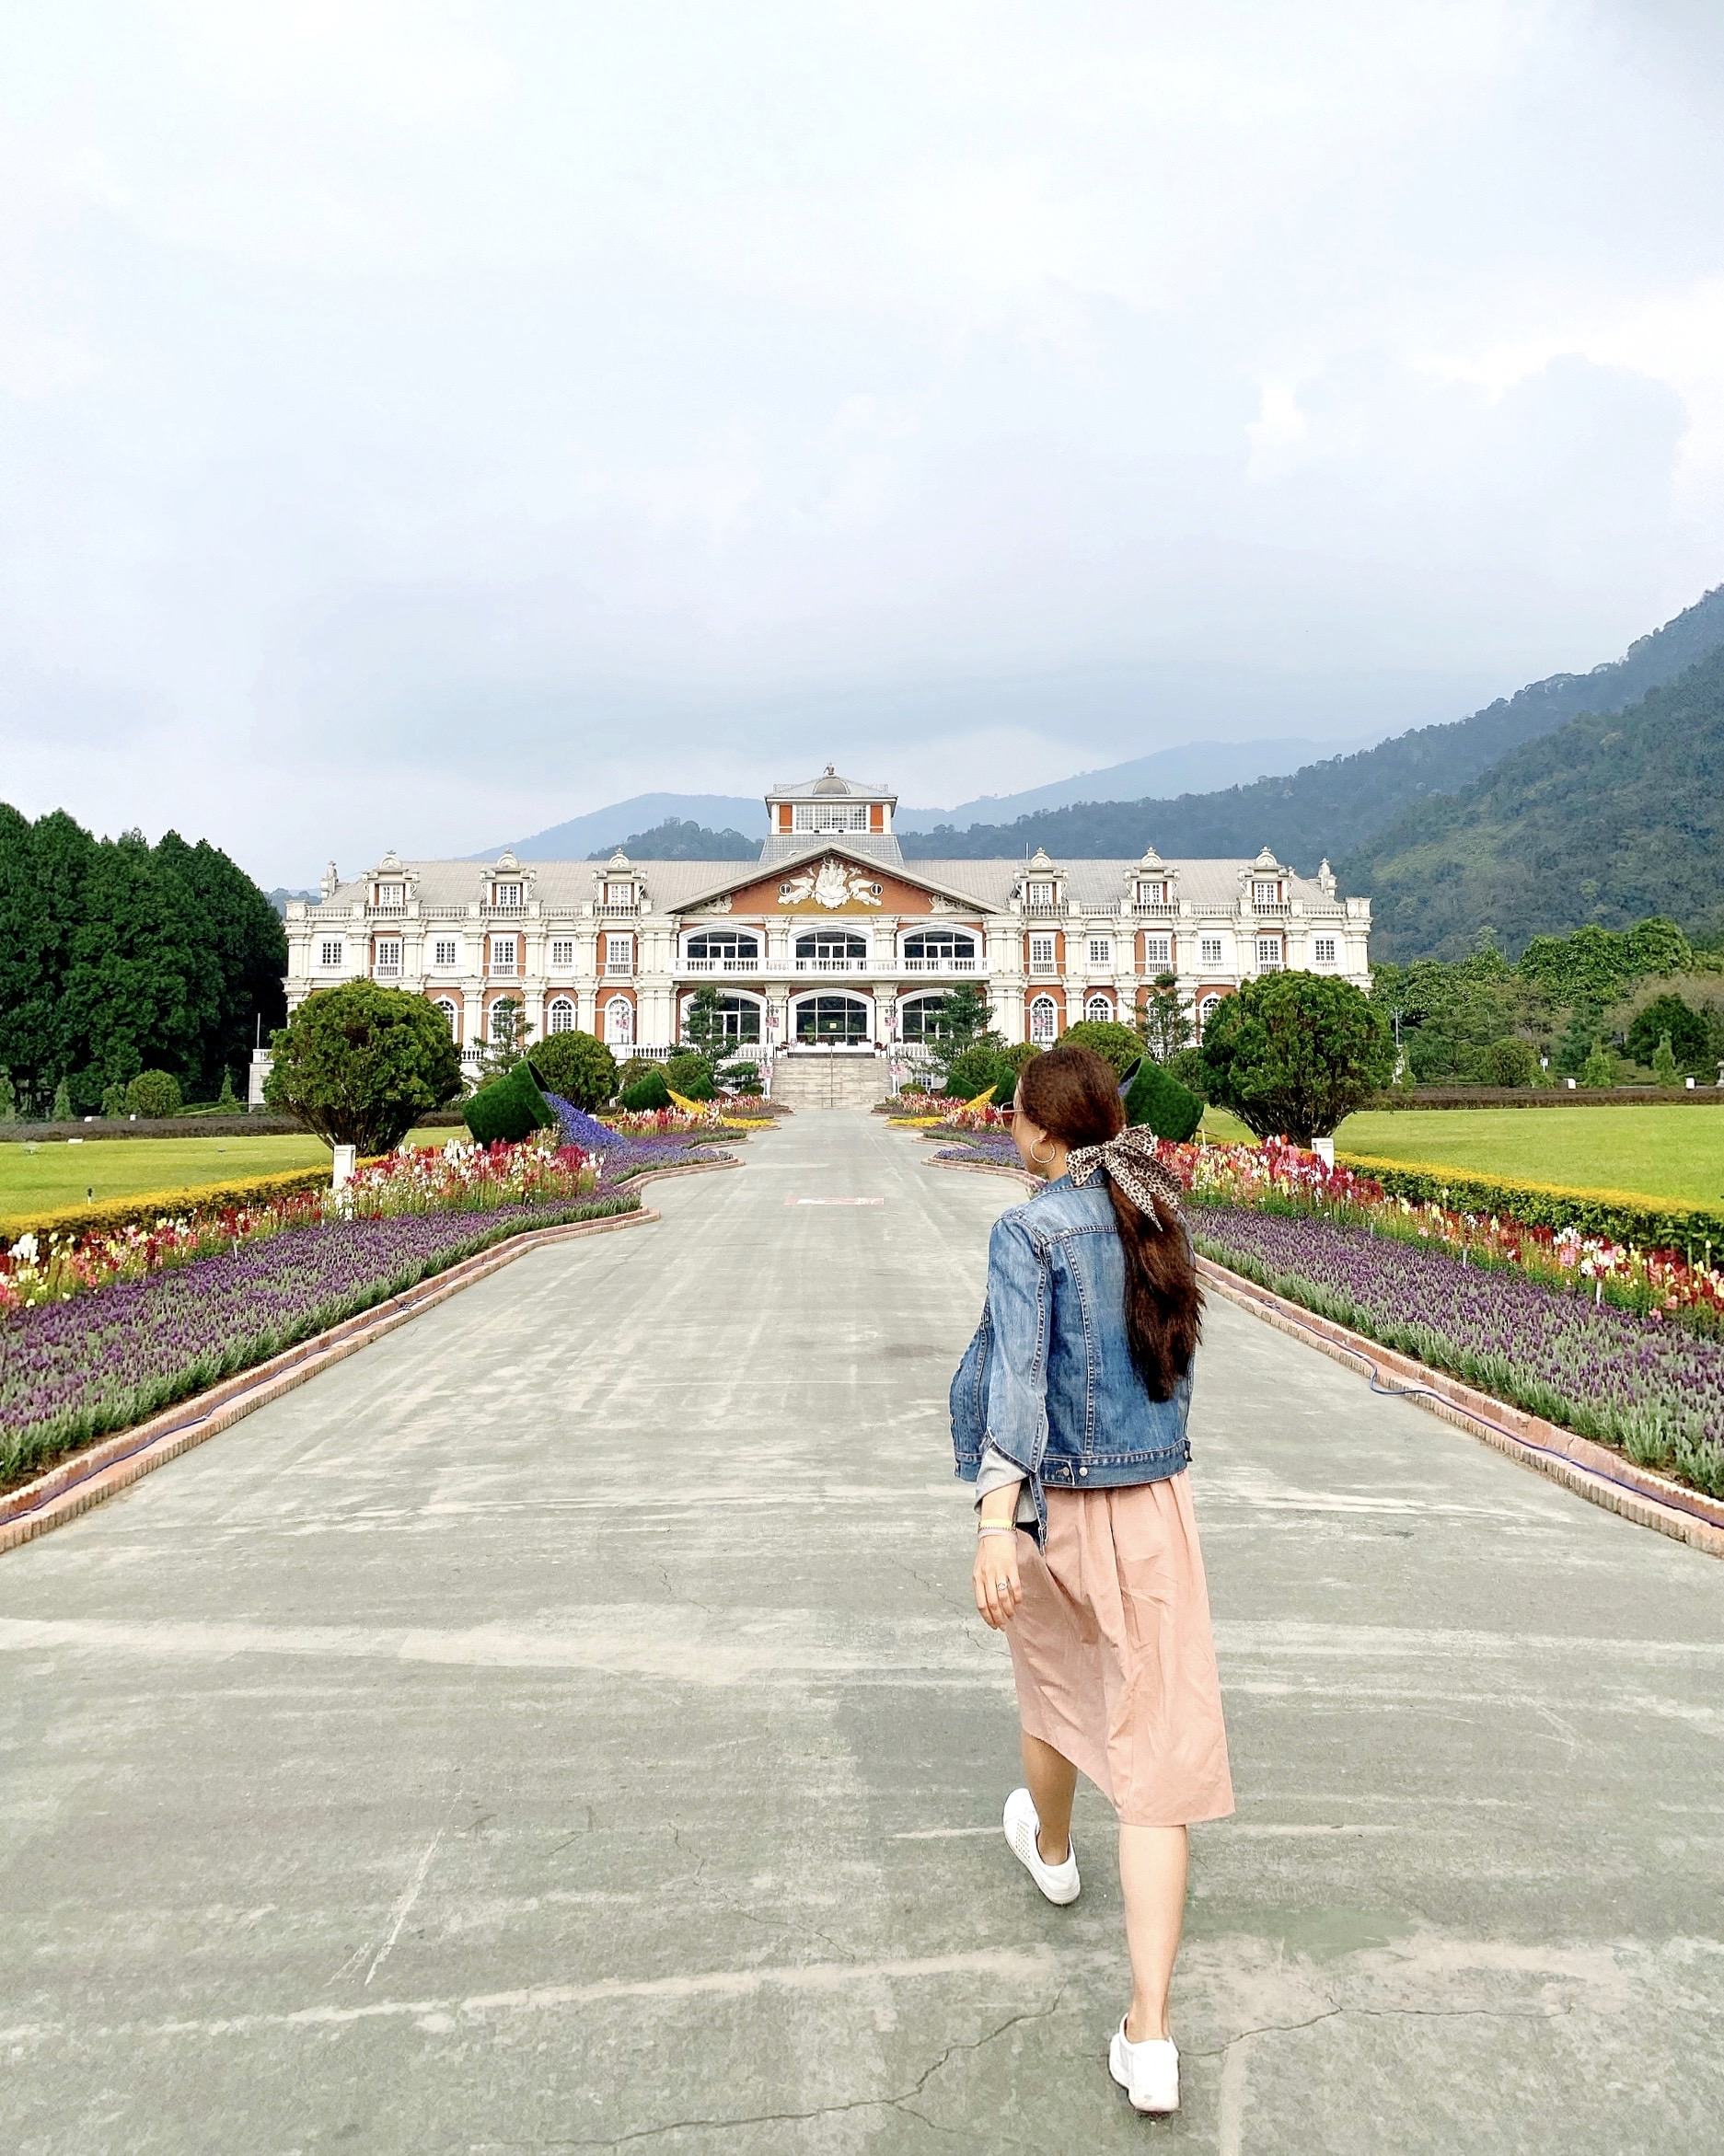 Taiwan indigenous people park looks like a French estate!